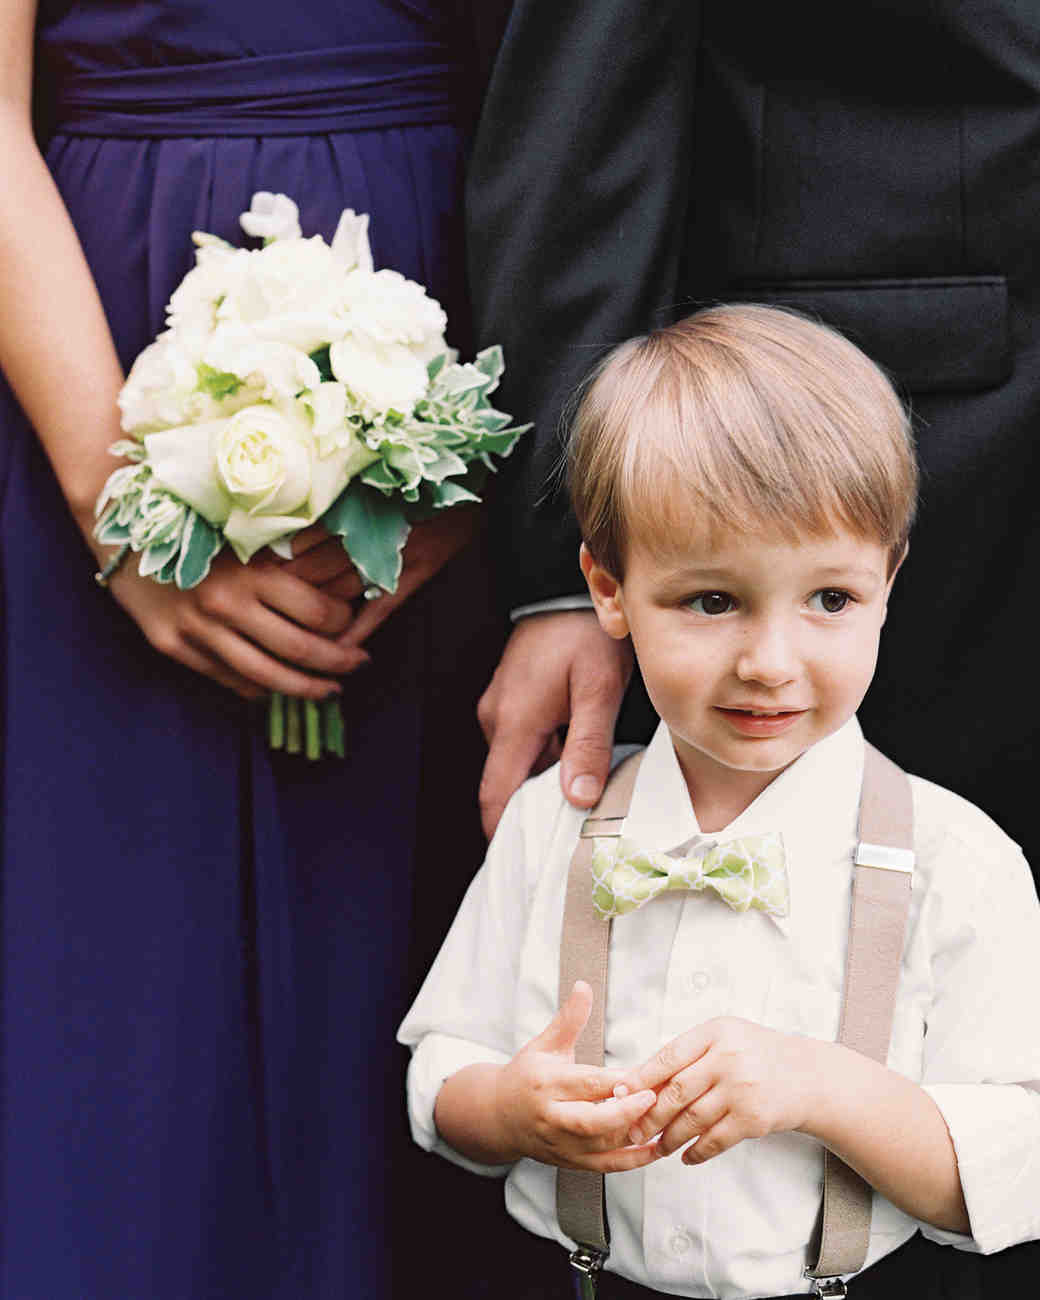 bridesmaids-bouquet-boy-008898-r1-008-copy-mwds110846.jpg